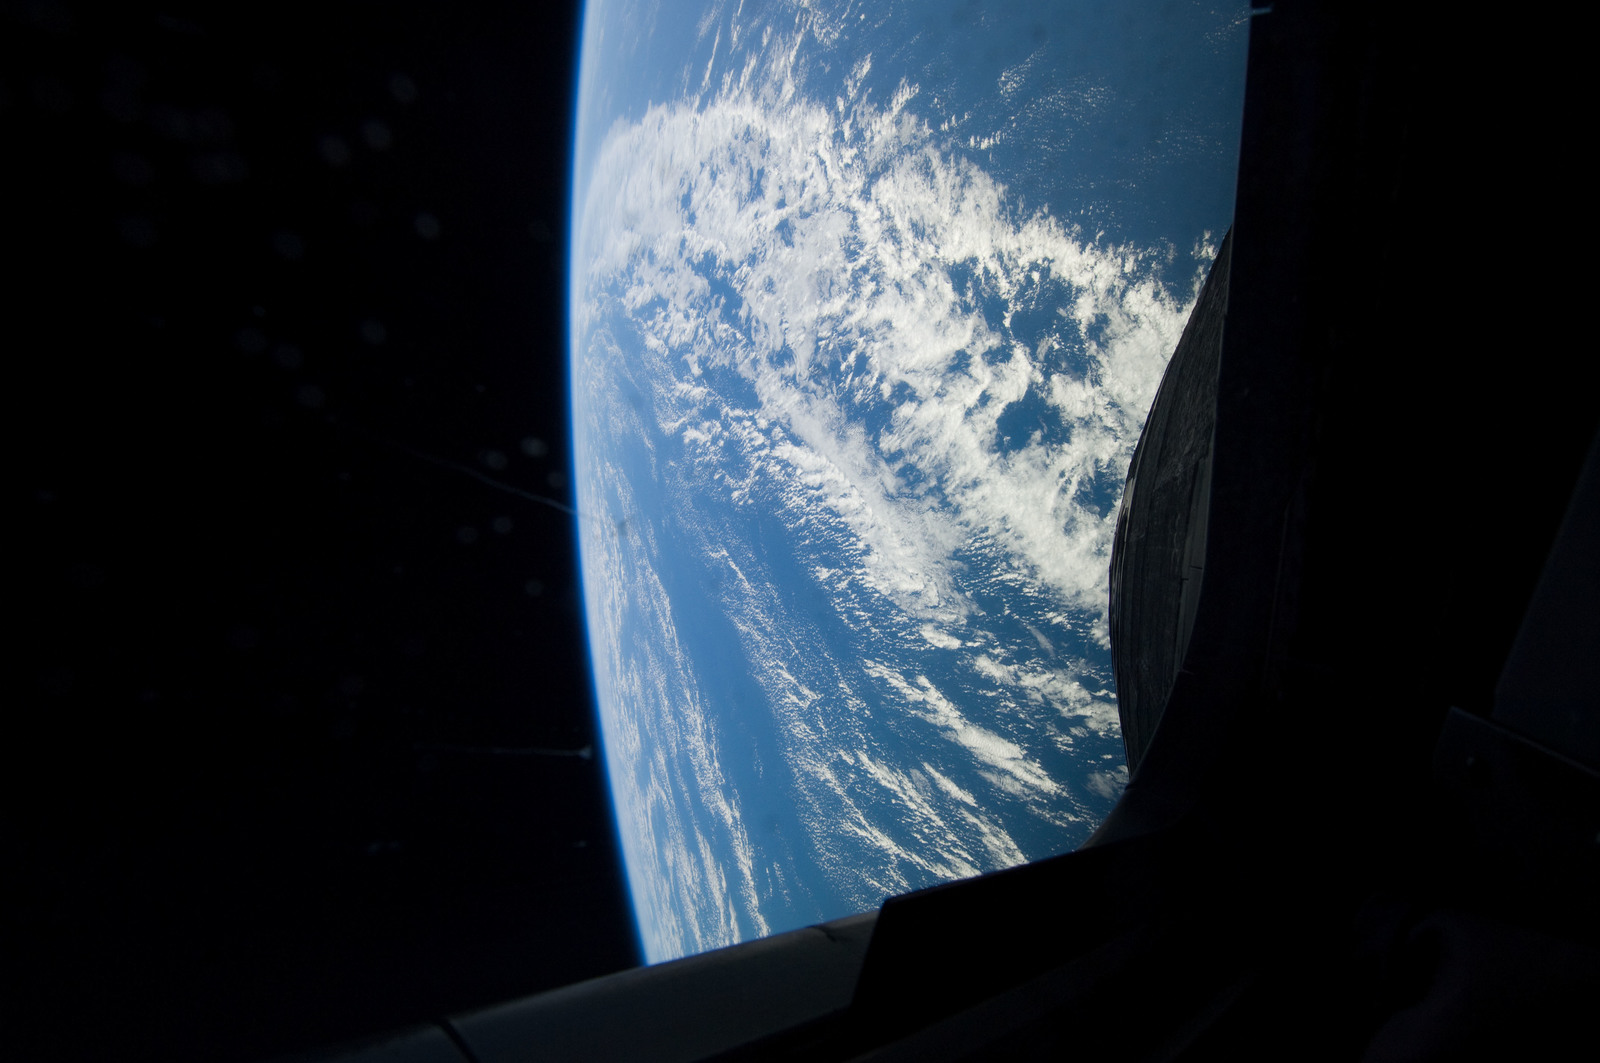 s133E006951 - STS-133 - Earth Observation taken by the STS-133 crew